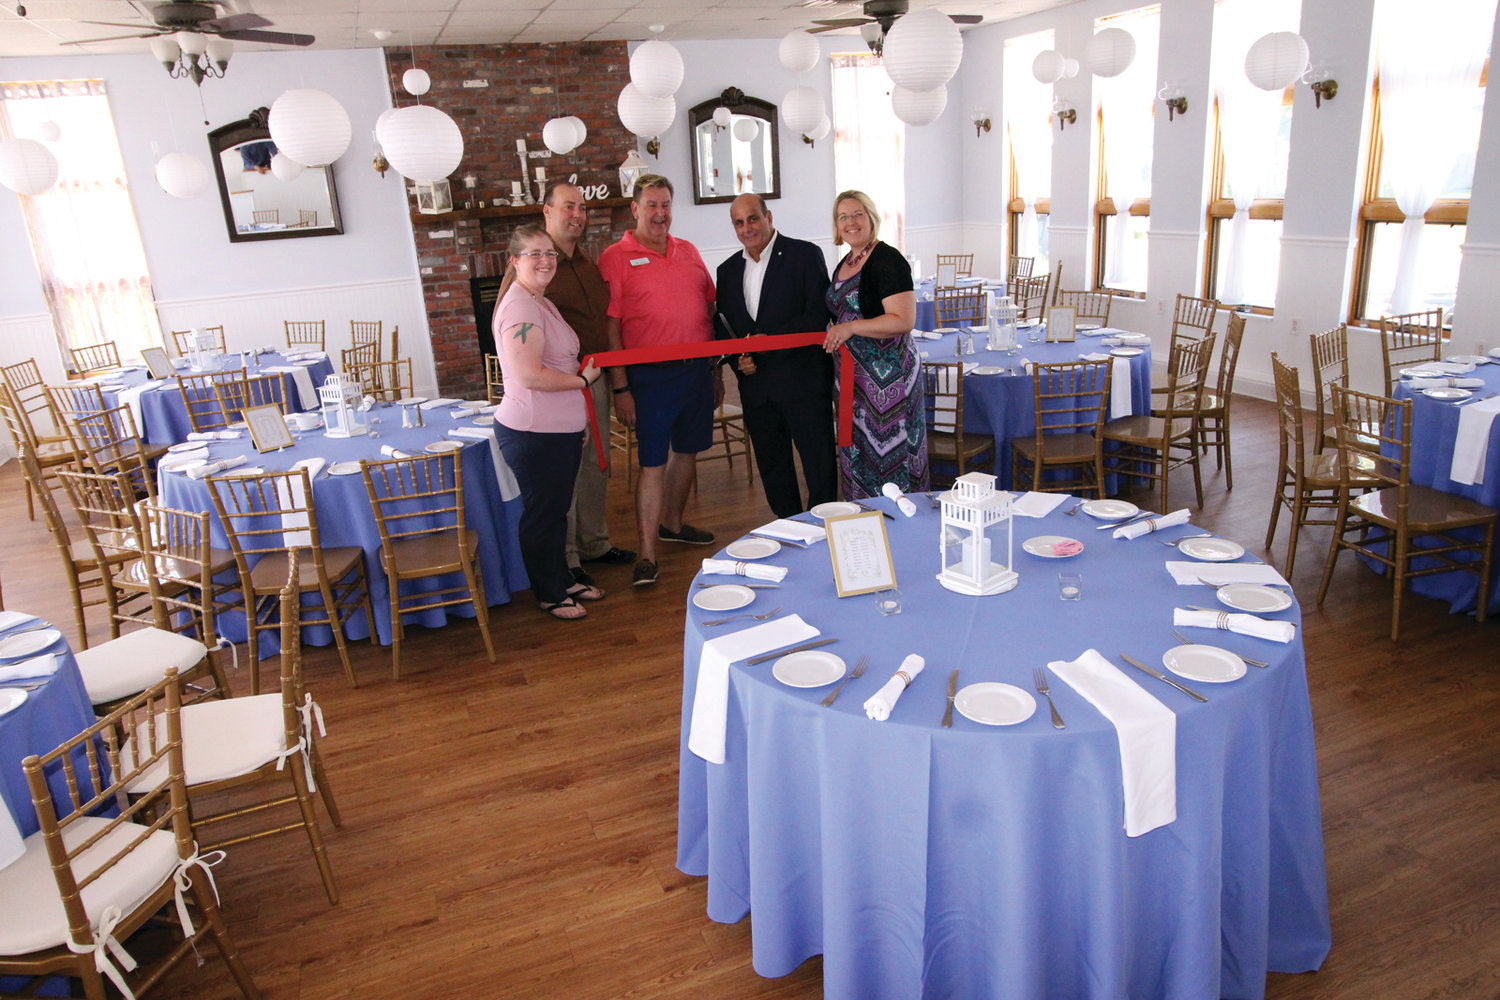 EVENTS VENUE: Christine Tadaro, catering manager, Mike Vierra, general manager, Mark Brown, catering and event director, Mayor Solomon, and Tori Jessop, sales and event planner in the main room of Cozy Caterers on Bay Avenue in Oakland Beach.